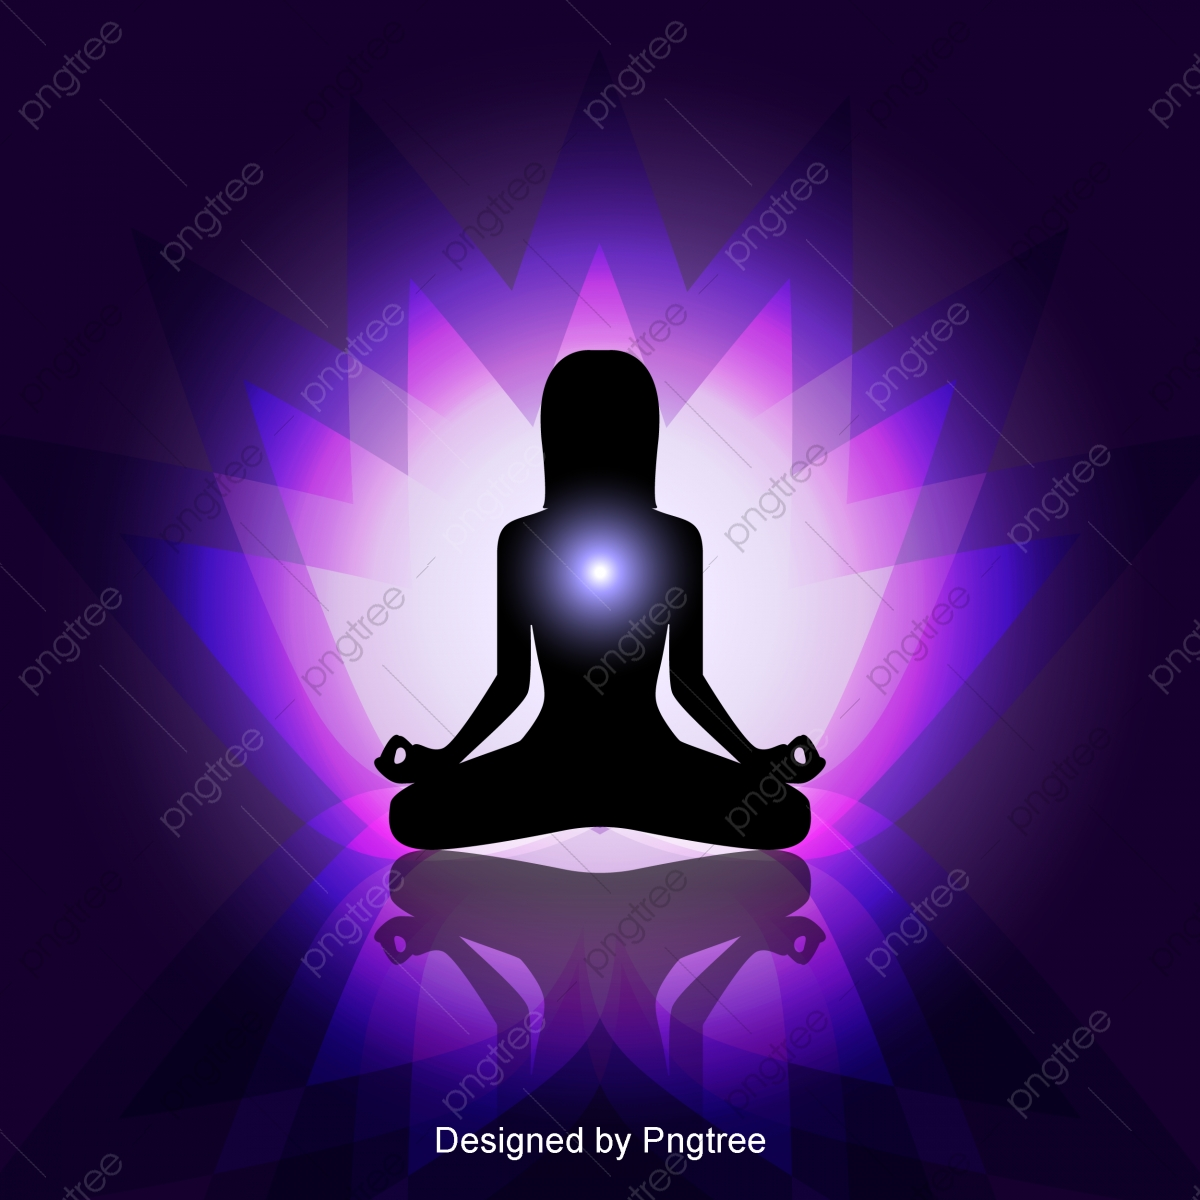 Simple Cartoon Beauty Yoga Decorative Pattern Meditation Purple Yoga Png And Vector With Transparent Background For Free Download